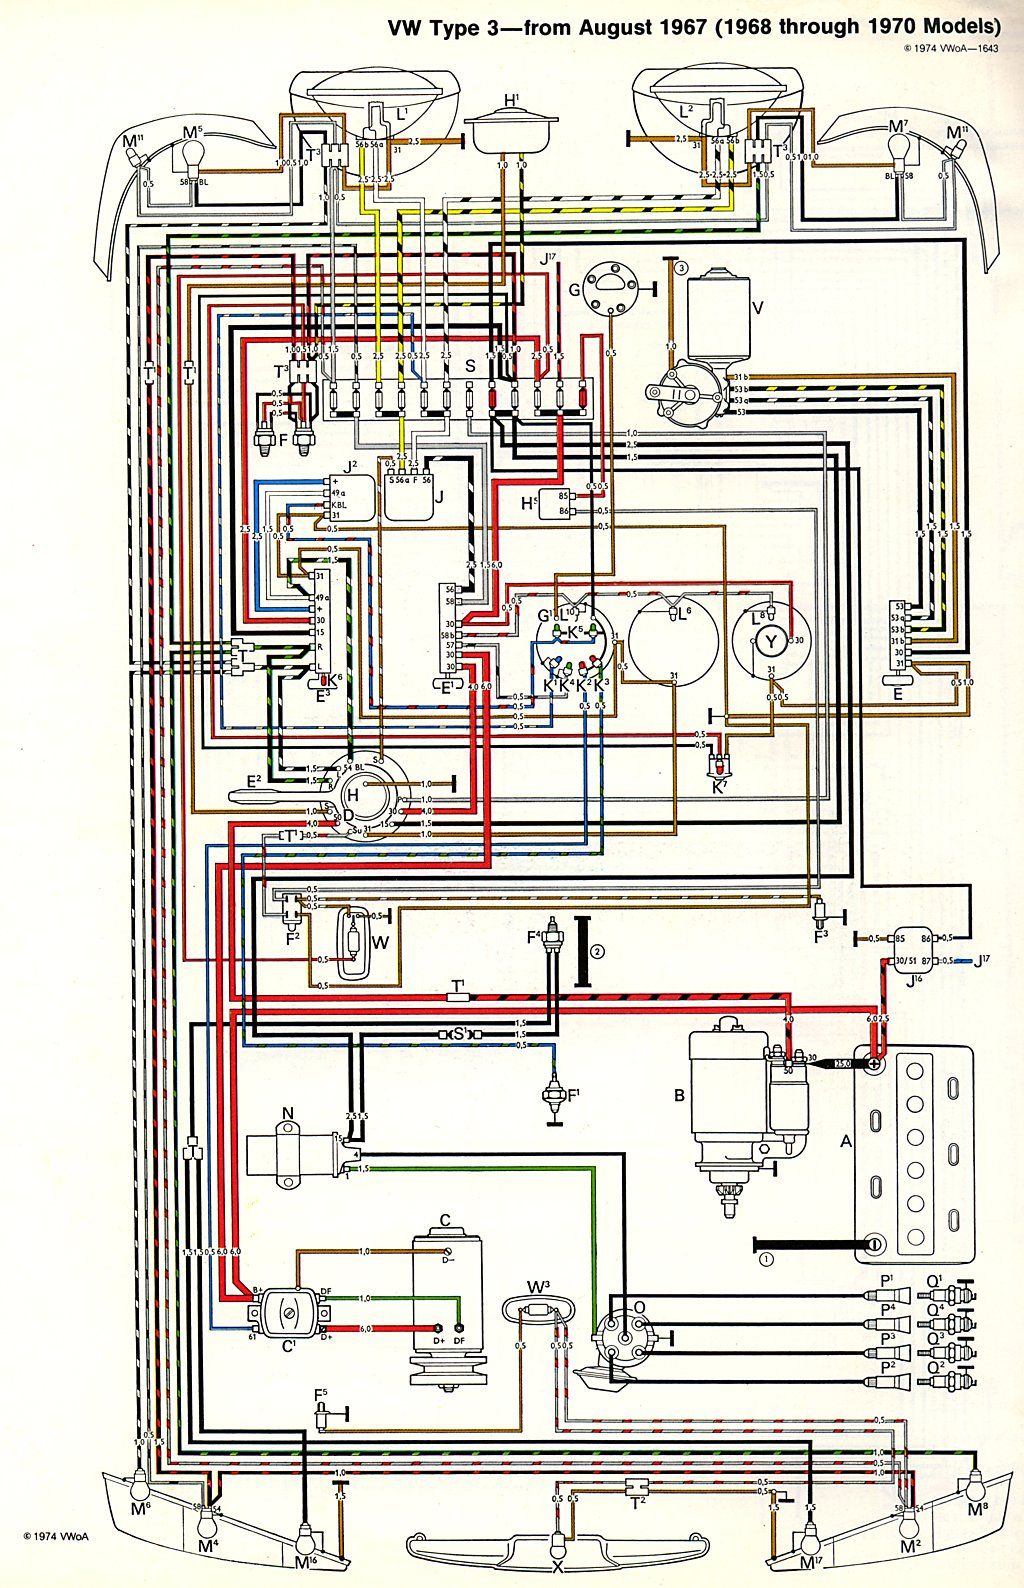 type3_6870 thesamba com type 3 wiring diagrams vw t5 wiring diagram download at panicattacktreatment.co